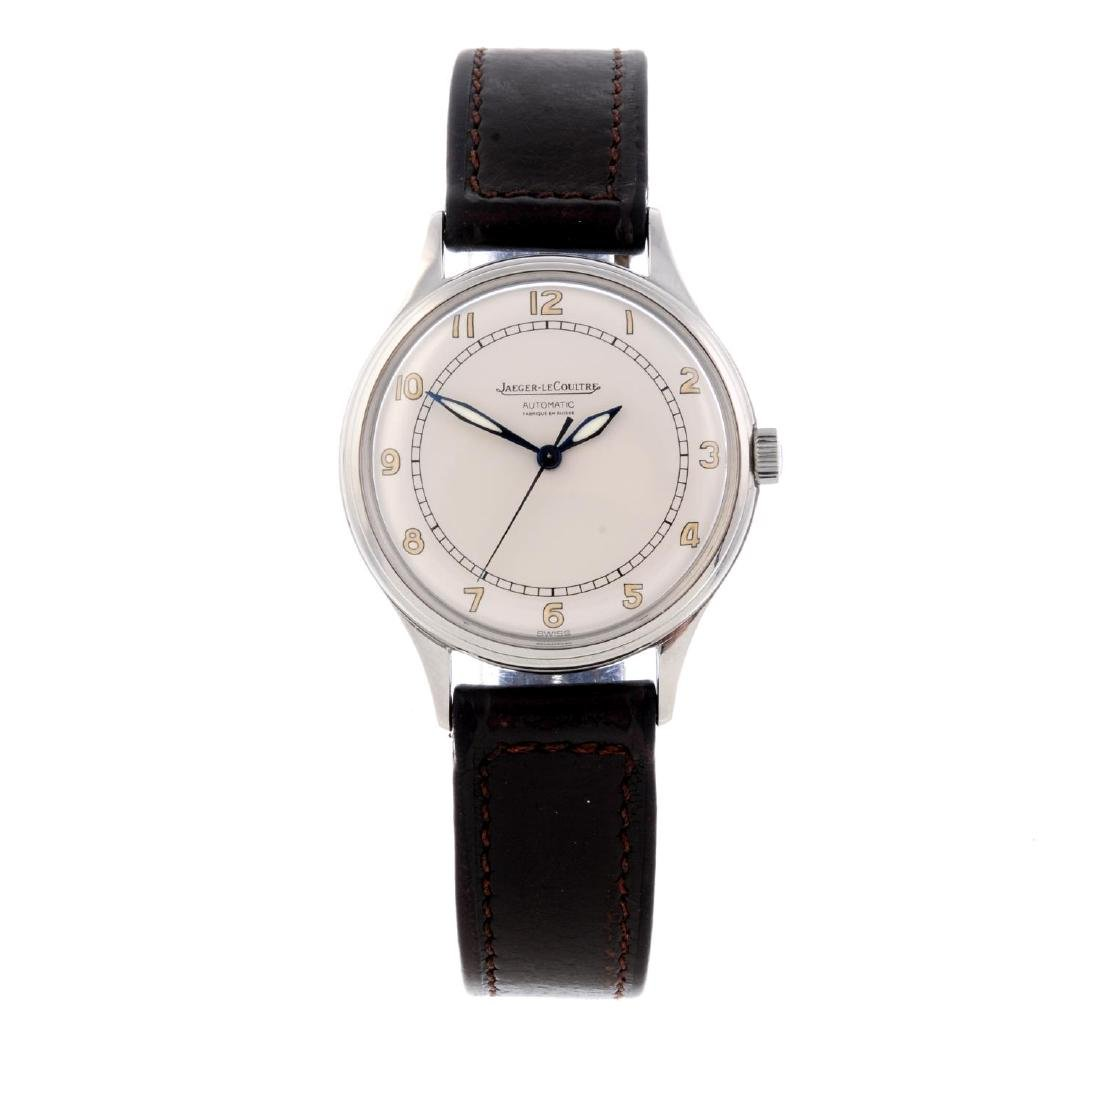 JAEGER-LECOULTRE - a gentleman's wrist watch. Stainless